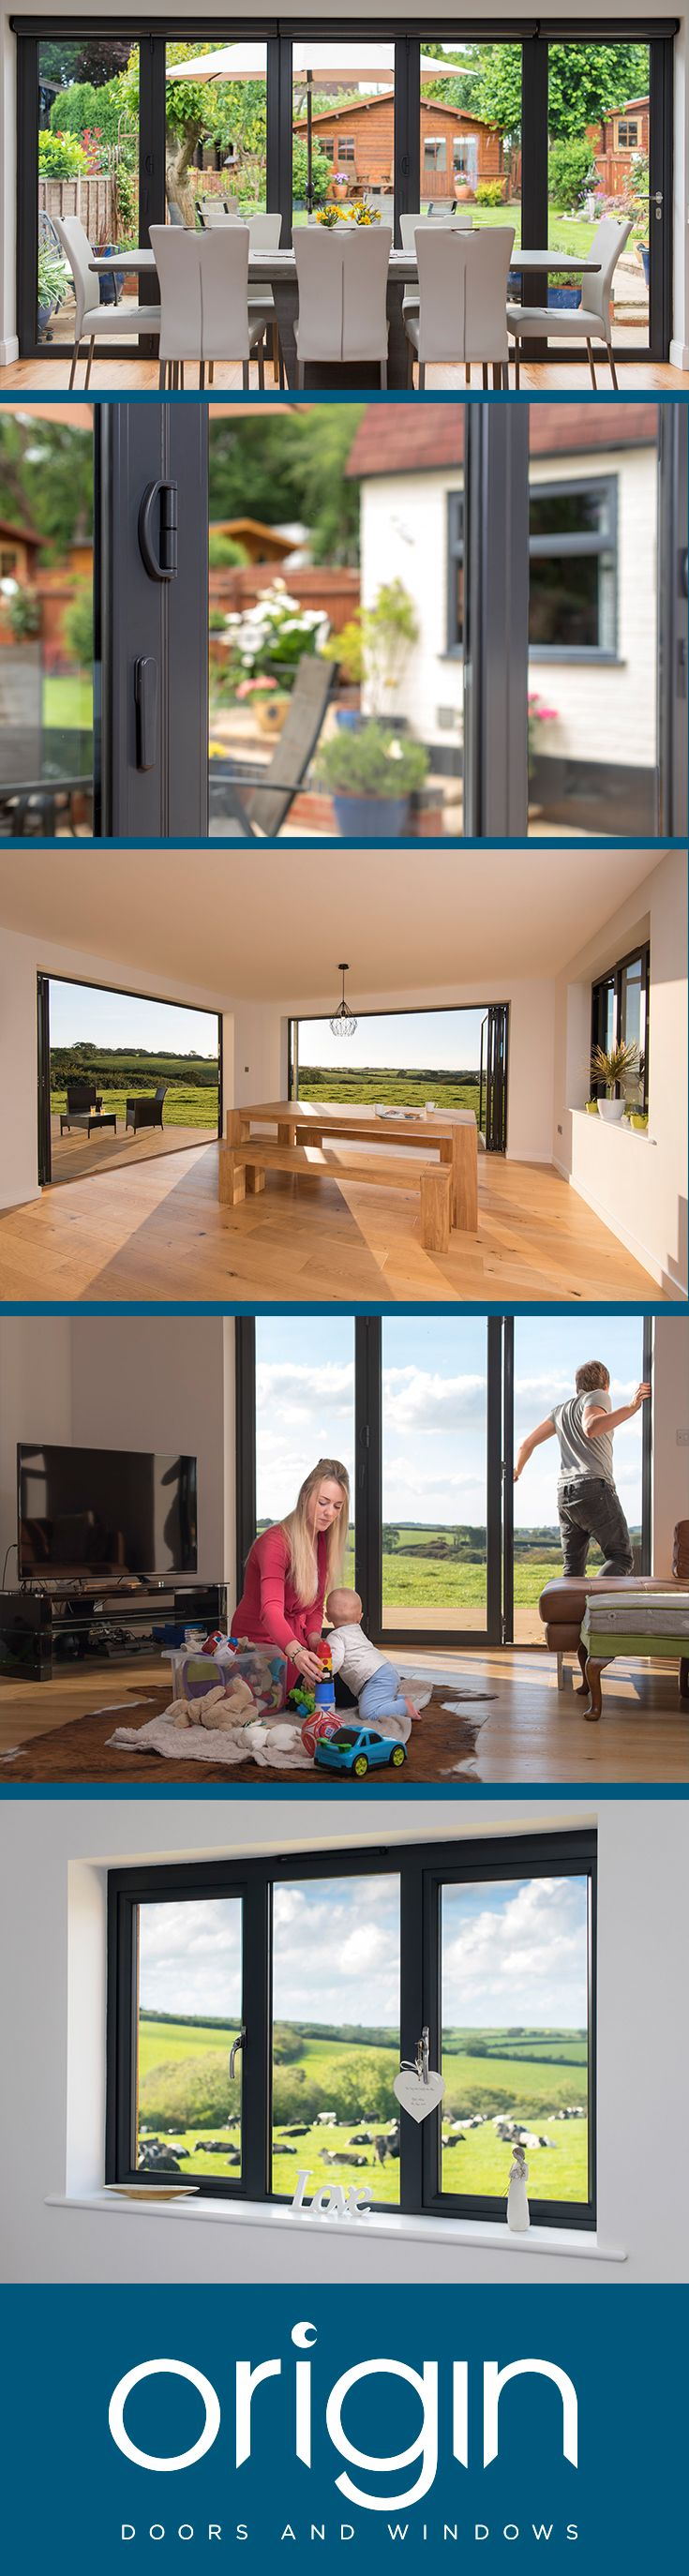 Origin Aluminium Doors and Windows will transform your home. For more information please visit www.origin-global.com